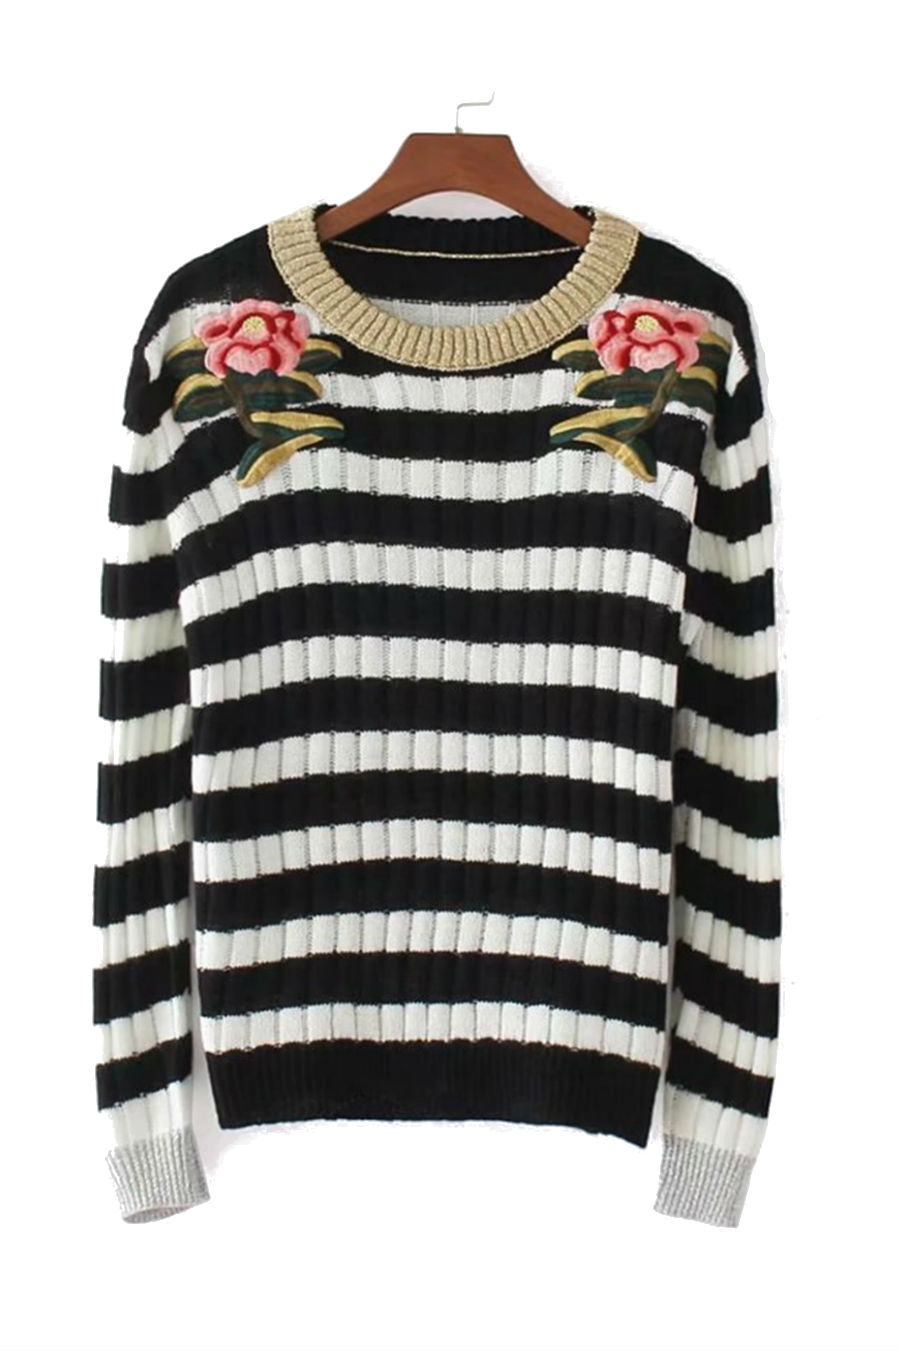 Rose Retro Striped Jumper